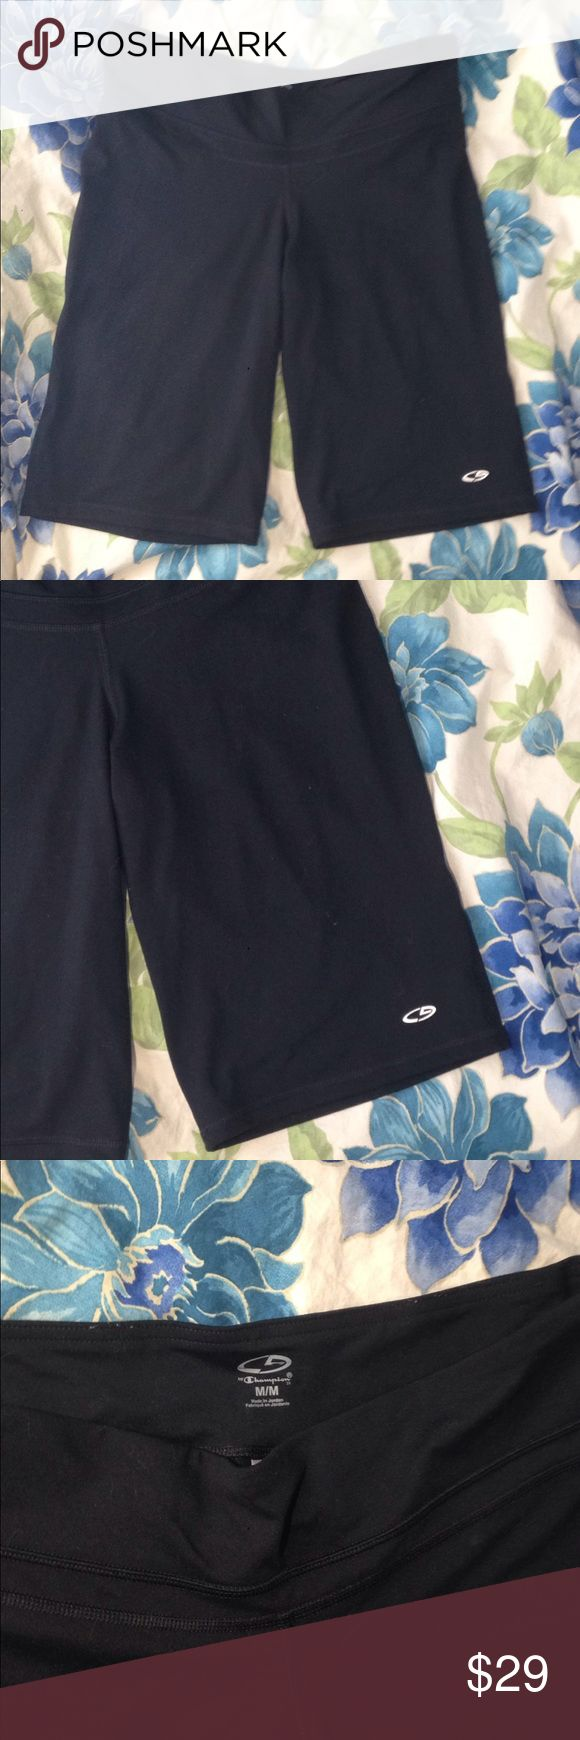 Active l Capris Shorts Champion Active Gym Capris Shorts in Black Size Medium workout shorts for gym running treadmill weight lifting polyester and spandex Champion Shorts